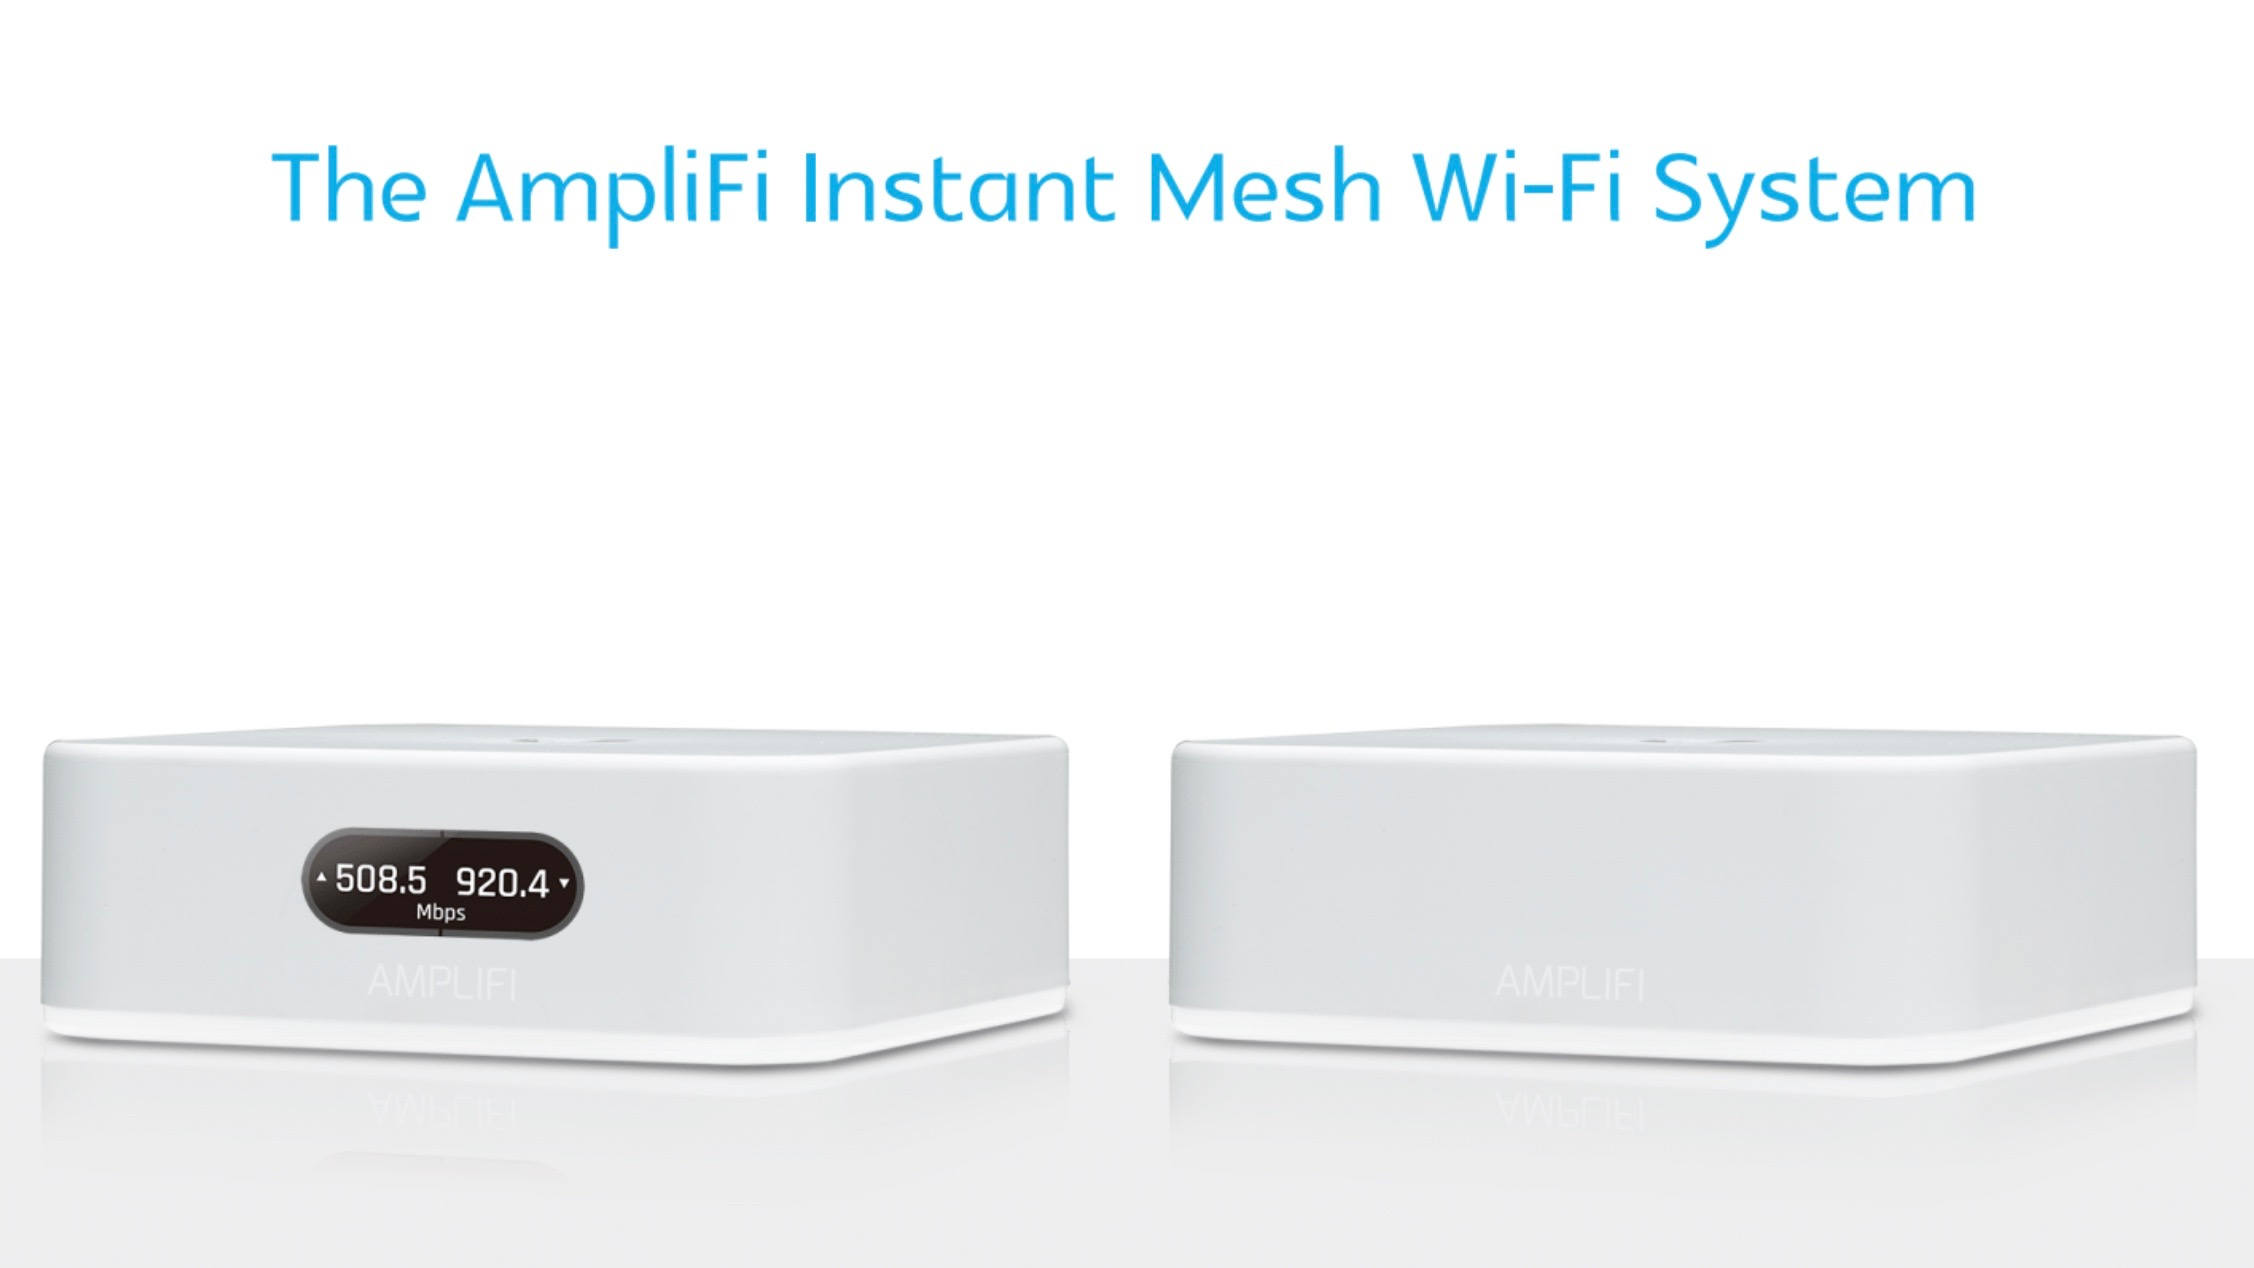 ubiquiti releases new amplifi instant mesh wi fi system sets up in under 2 minutes